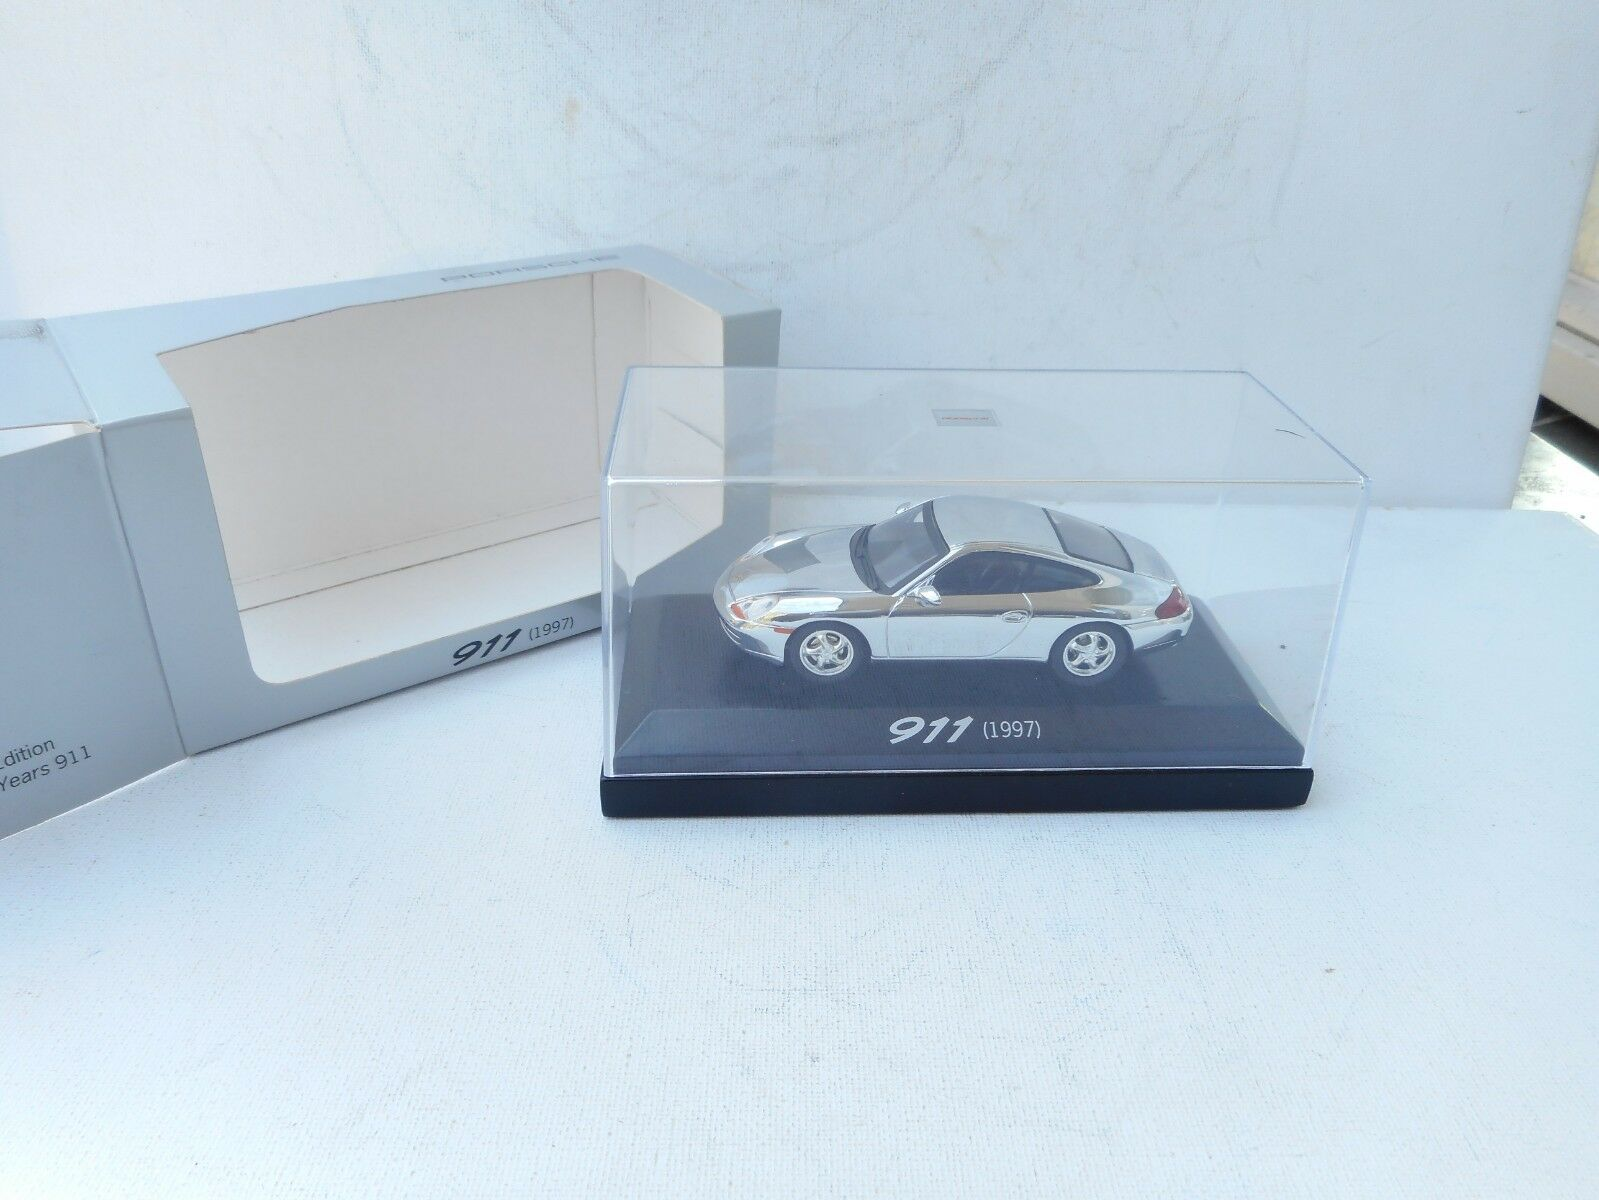 Rare Porsche Dealer 911 Coupe from 1997  in Chrome. Minichamps 1 43 Diecast NEW